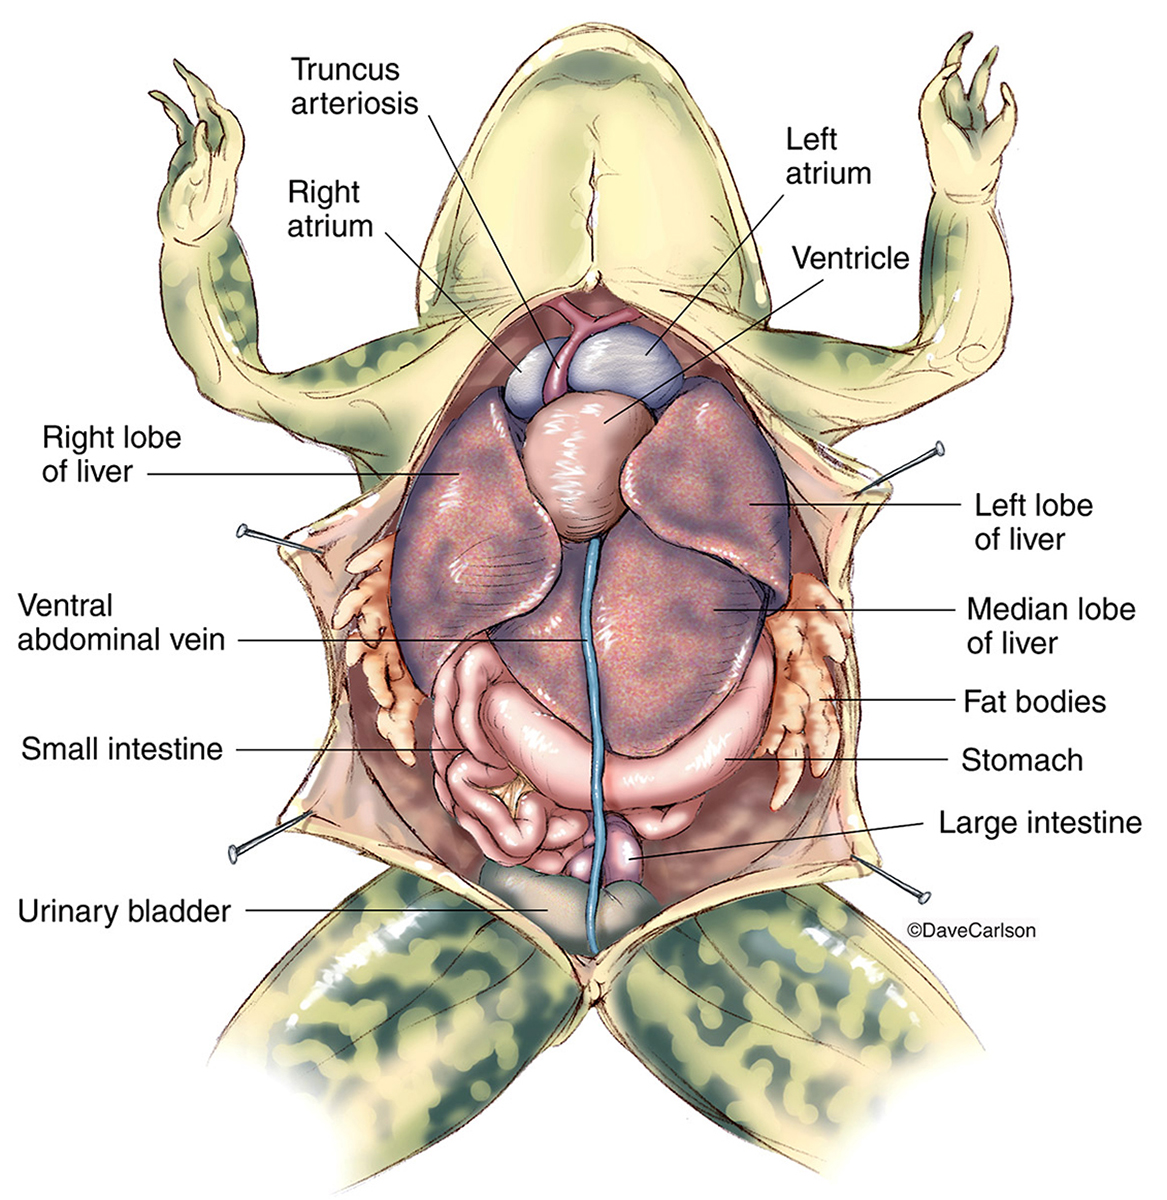 Illustration, frog thoracic abdominal organs in situ, frog anatomy, overview, photo